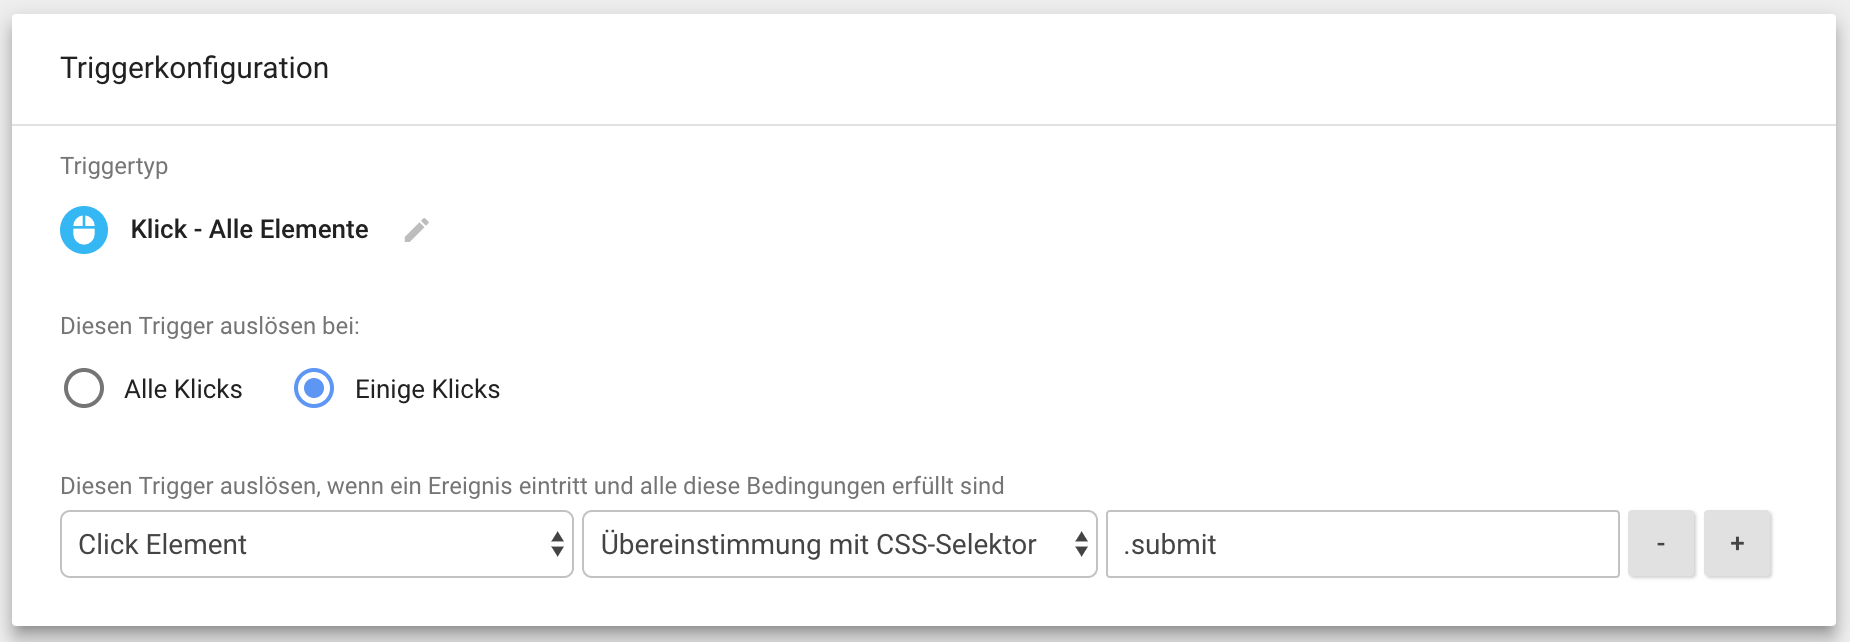 Ein Tag Manager Trigger mit CSS-Selektor